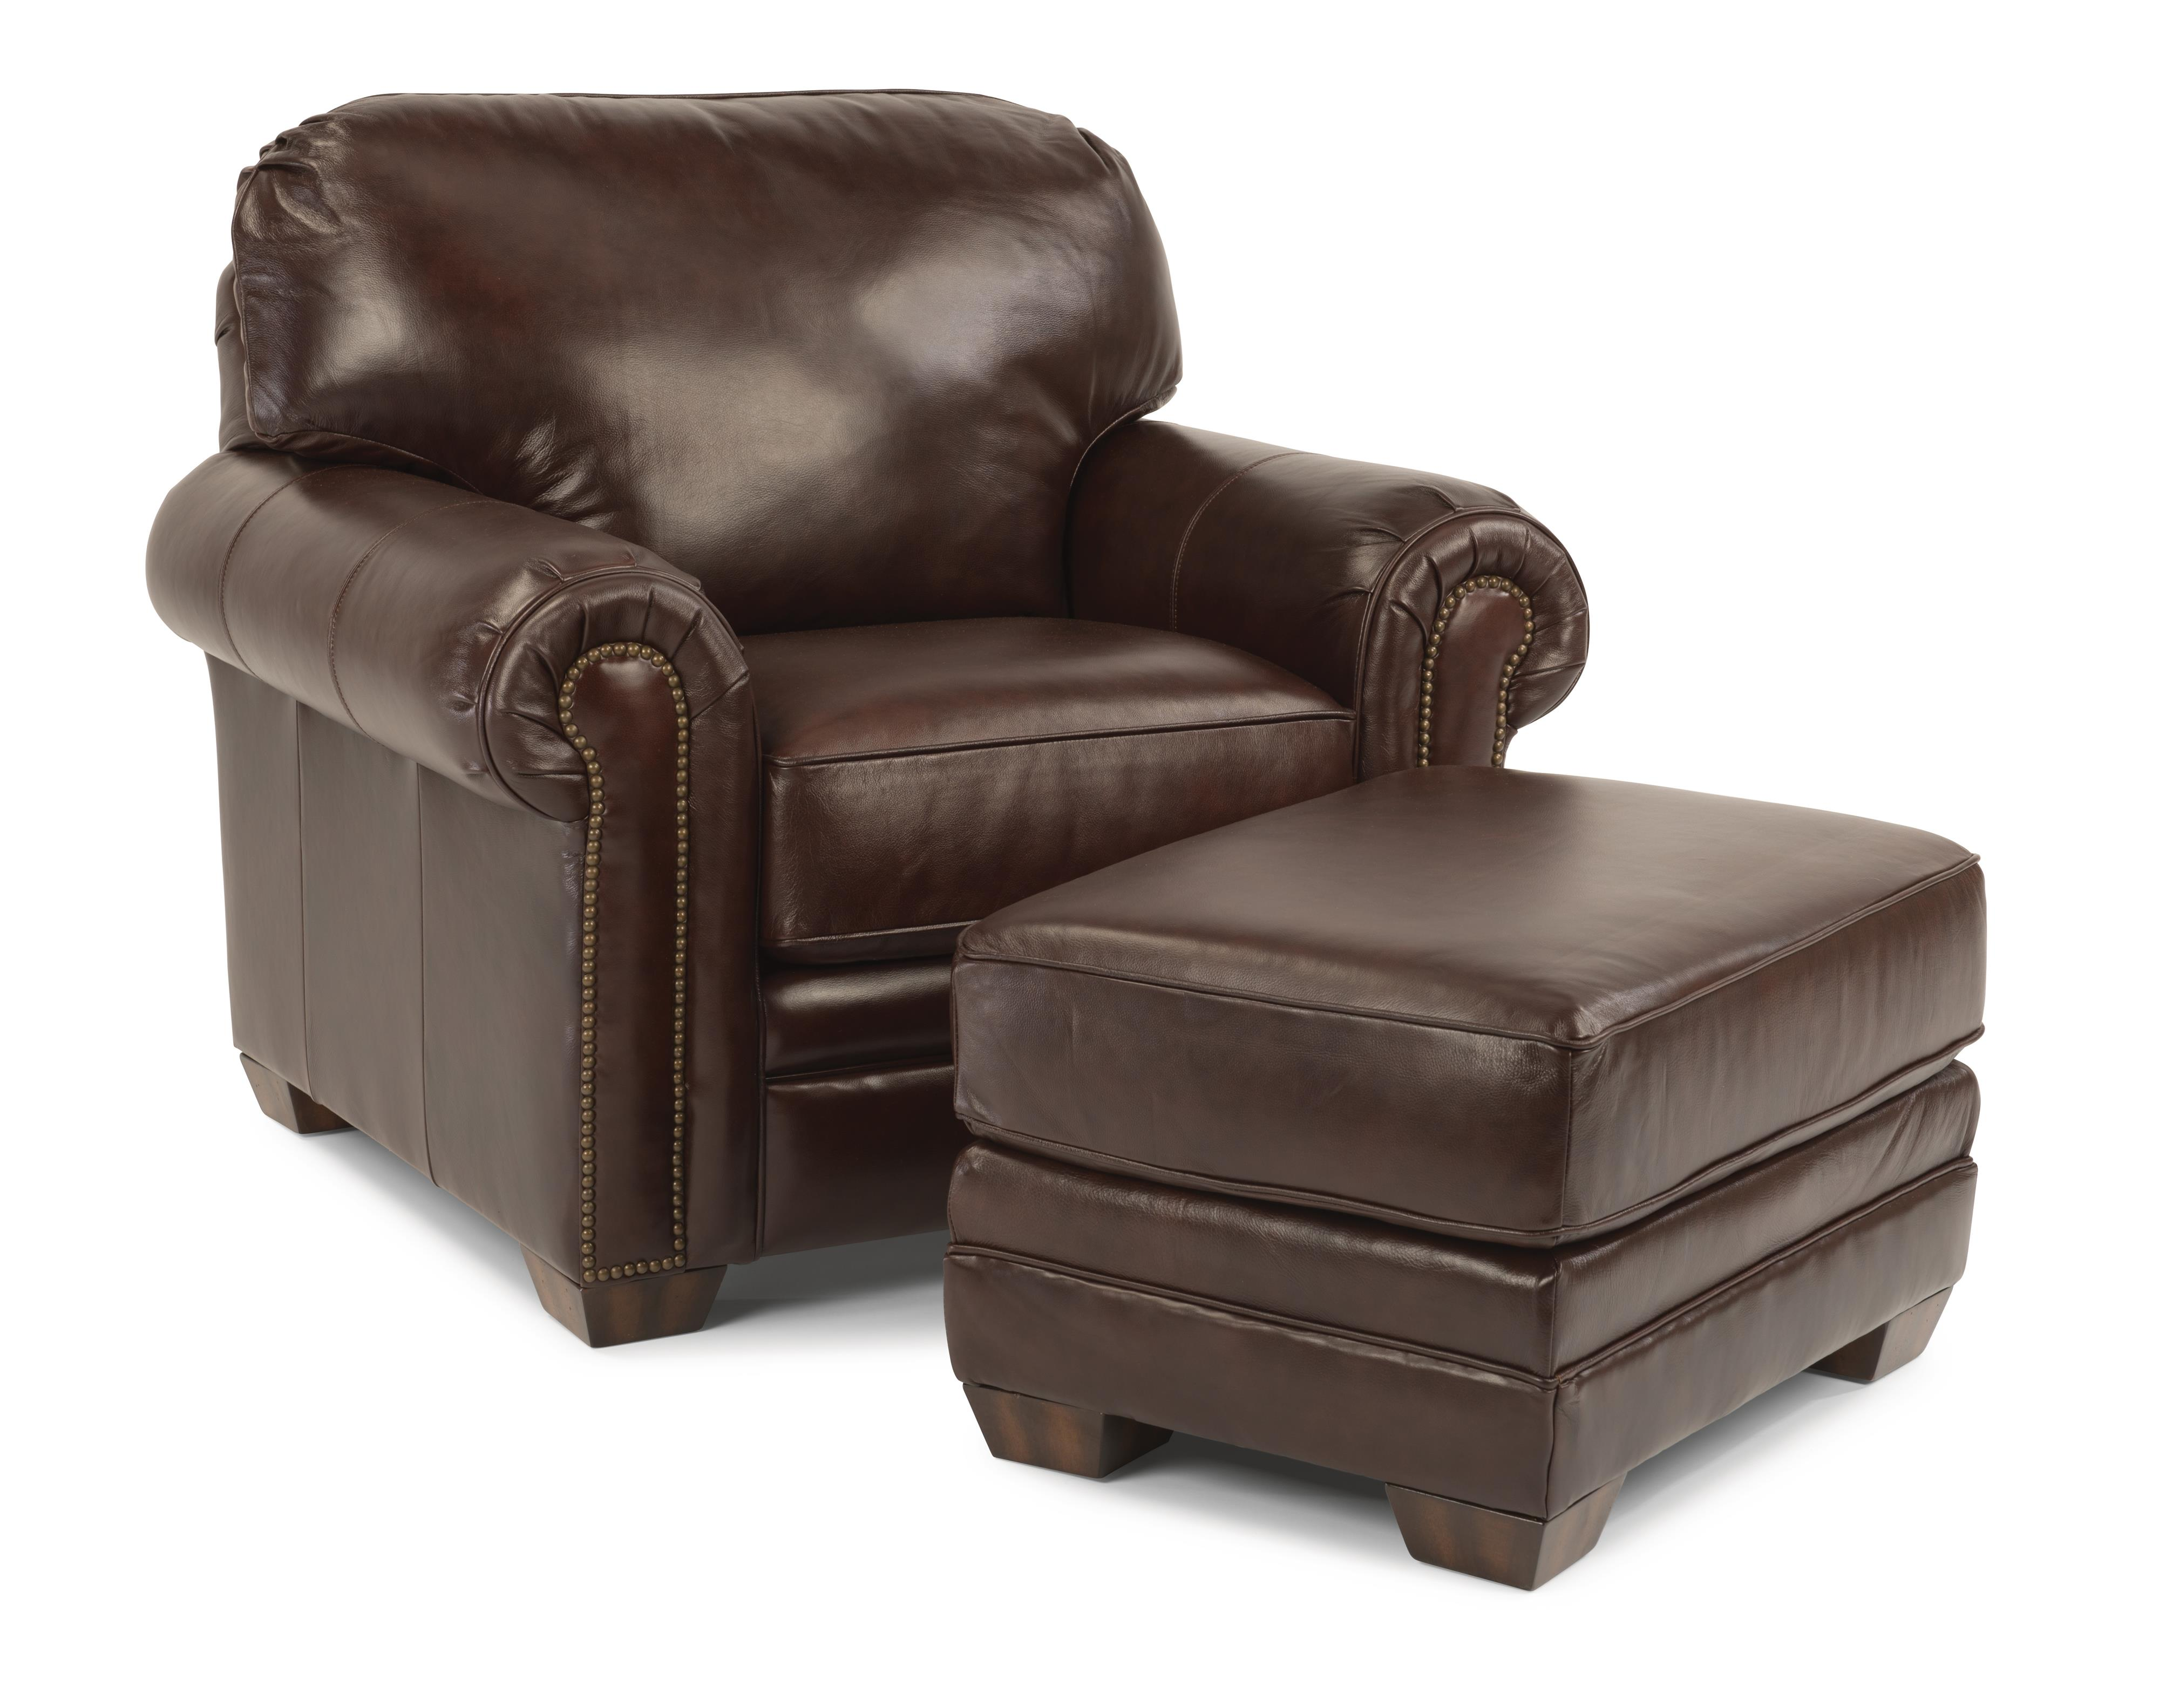 Flexsteel Harrison Chair and Ottoman - Item Number: 3270-10-08